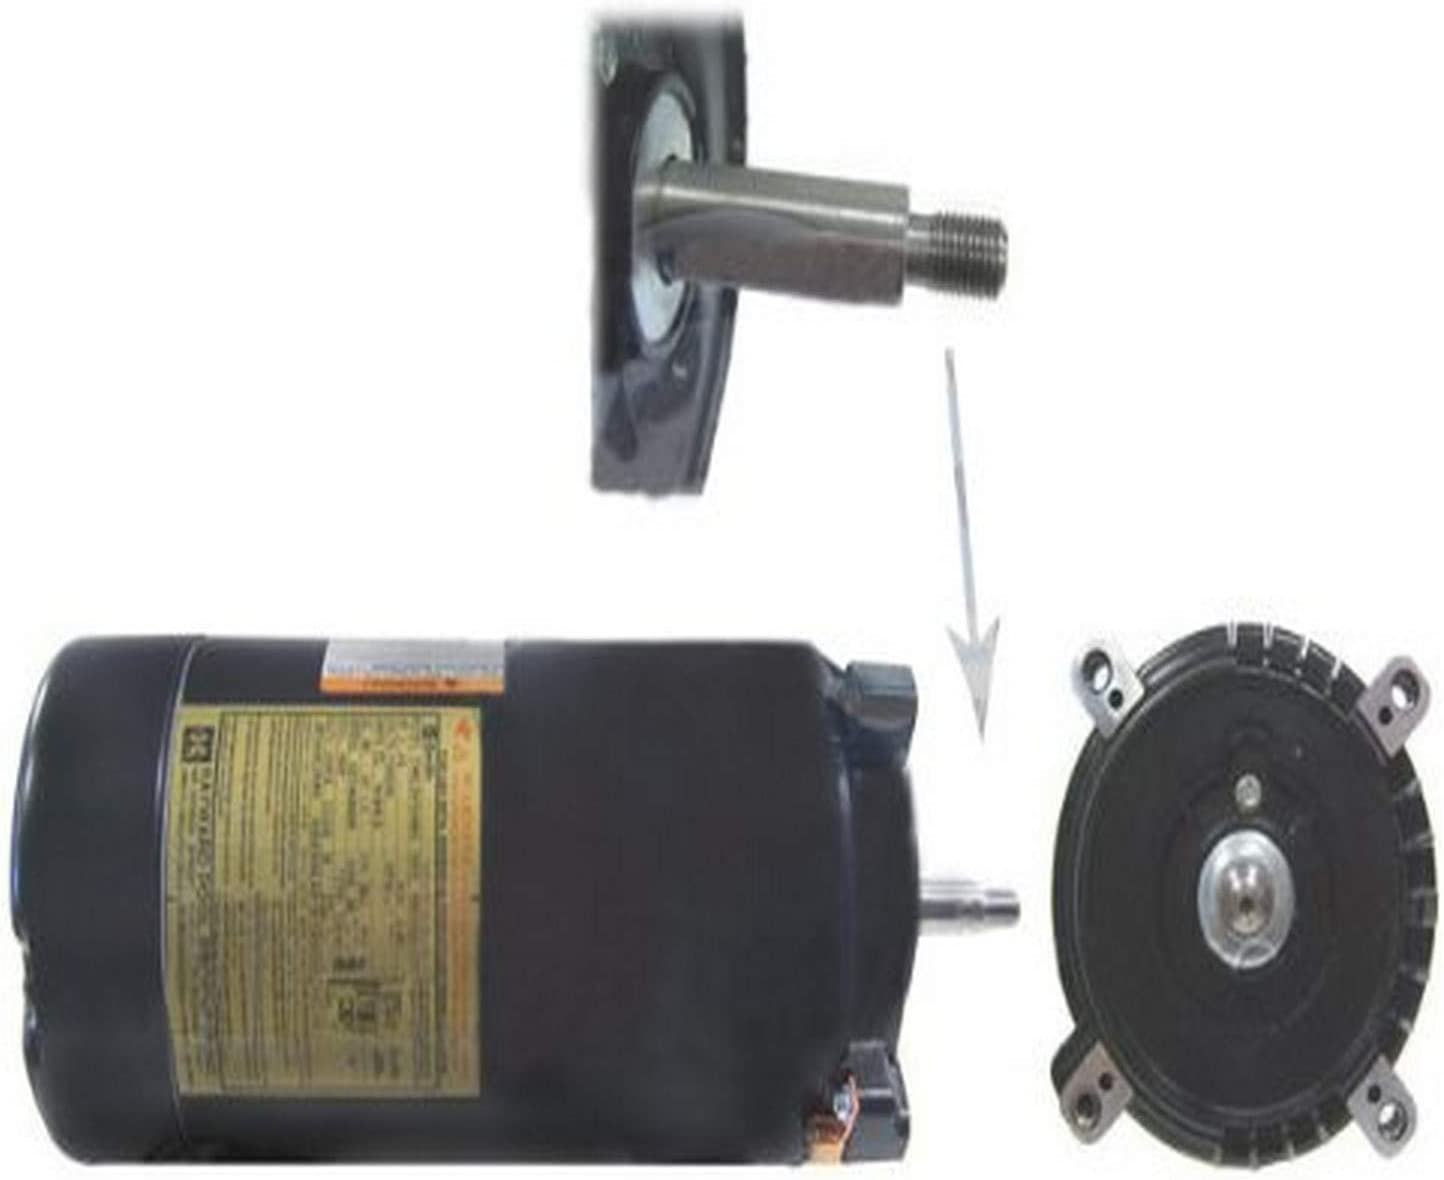 Hayward SPX1600Z1M Maxrate Motor Replacement for Hayward Superpump and Max-Flo Pumps, 1/2-HP